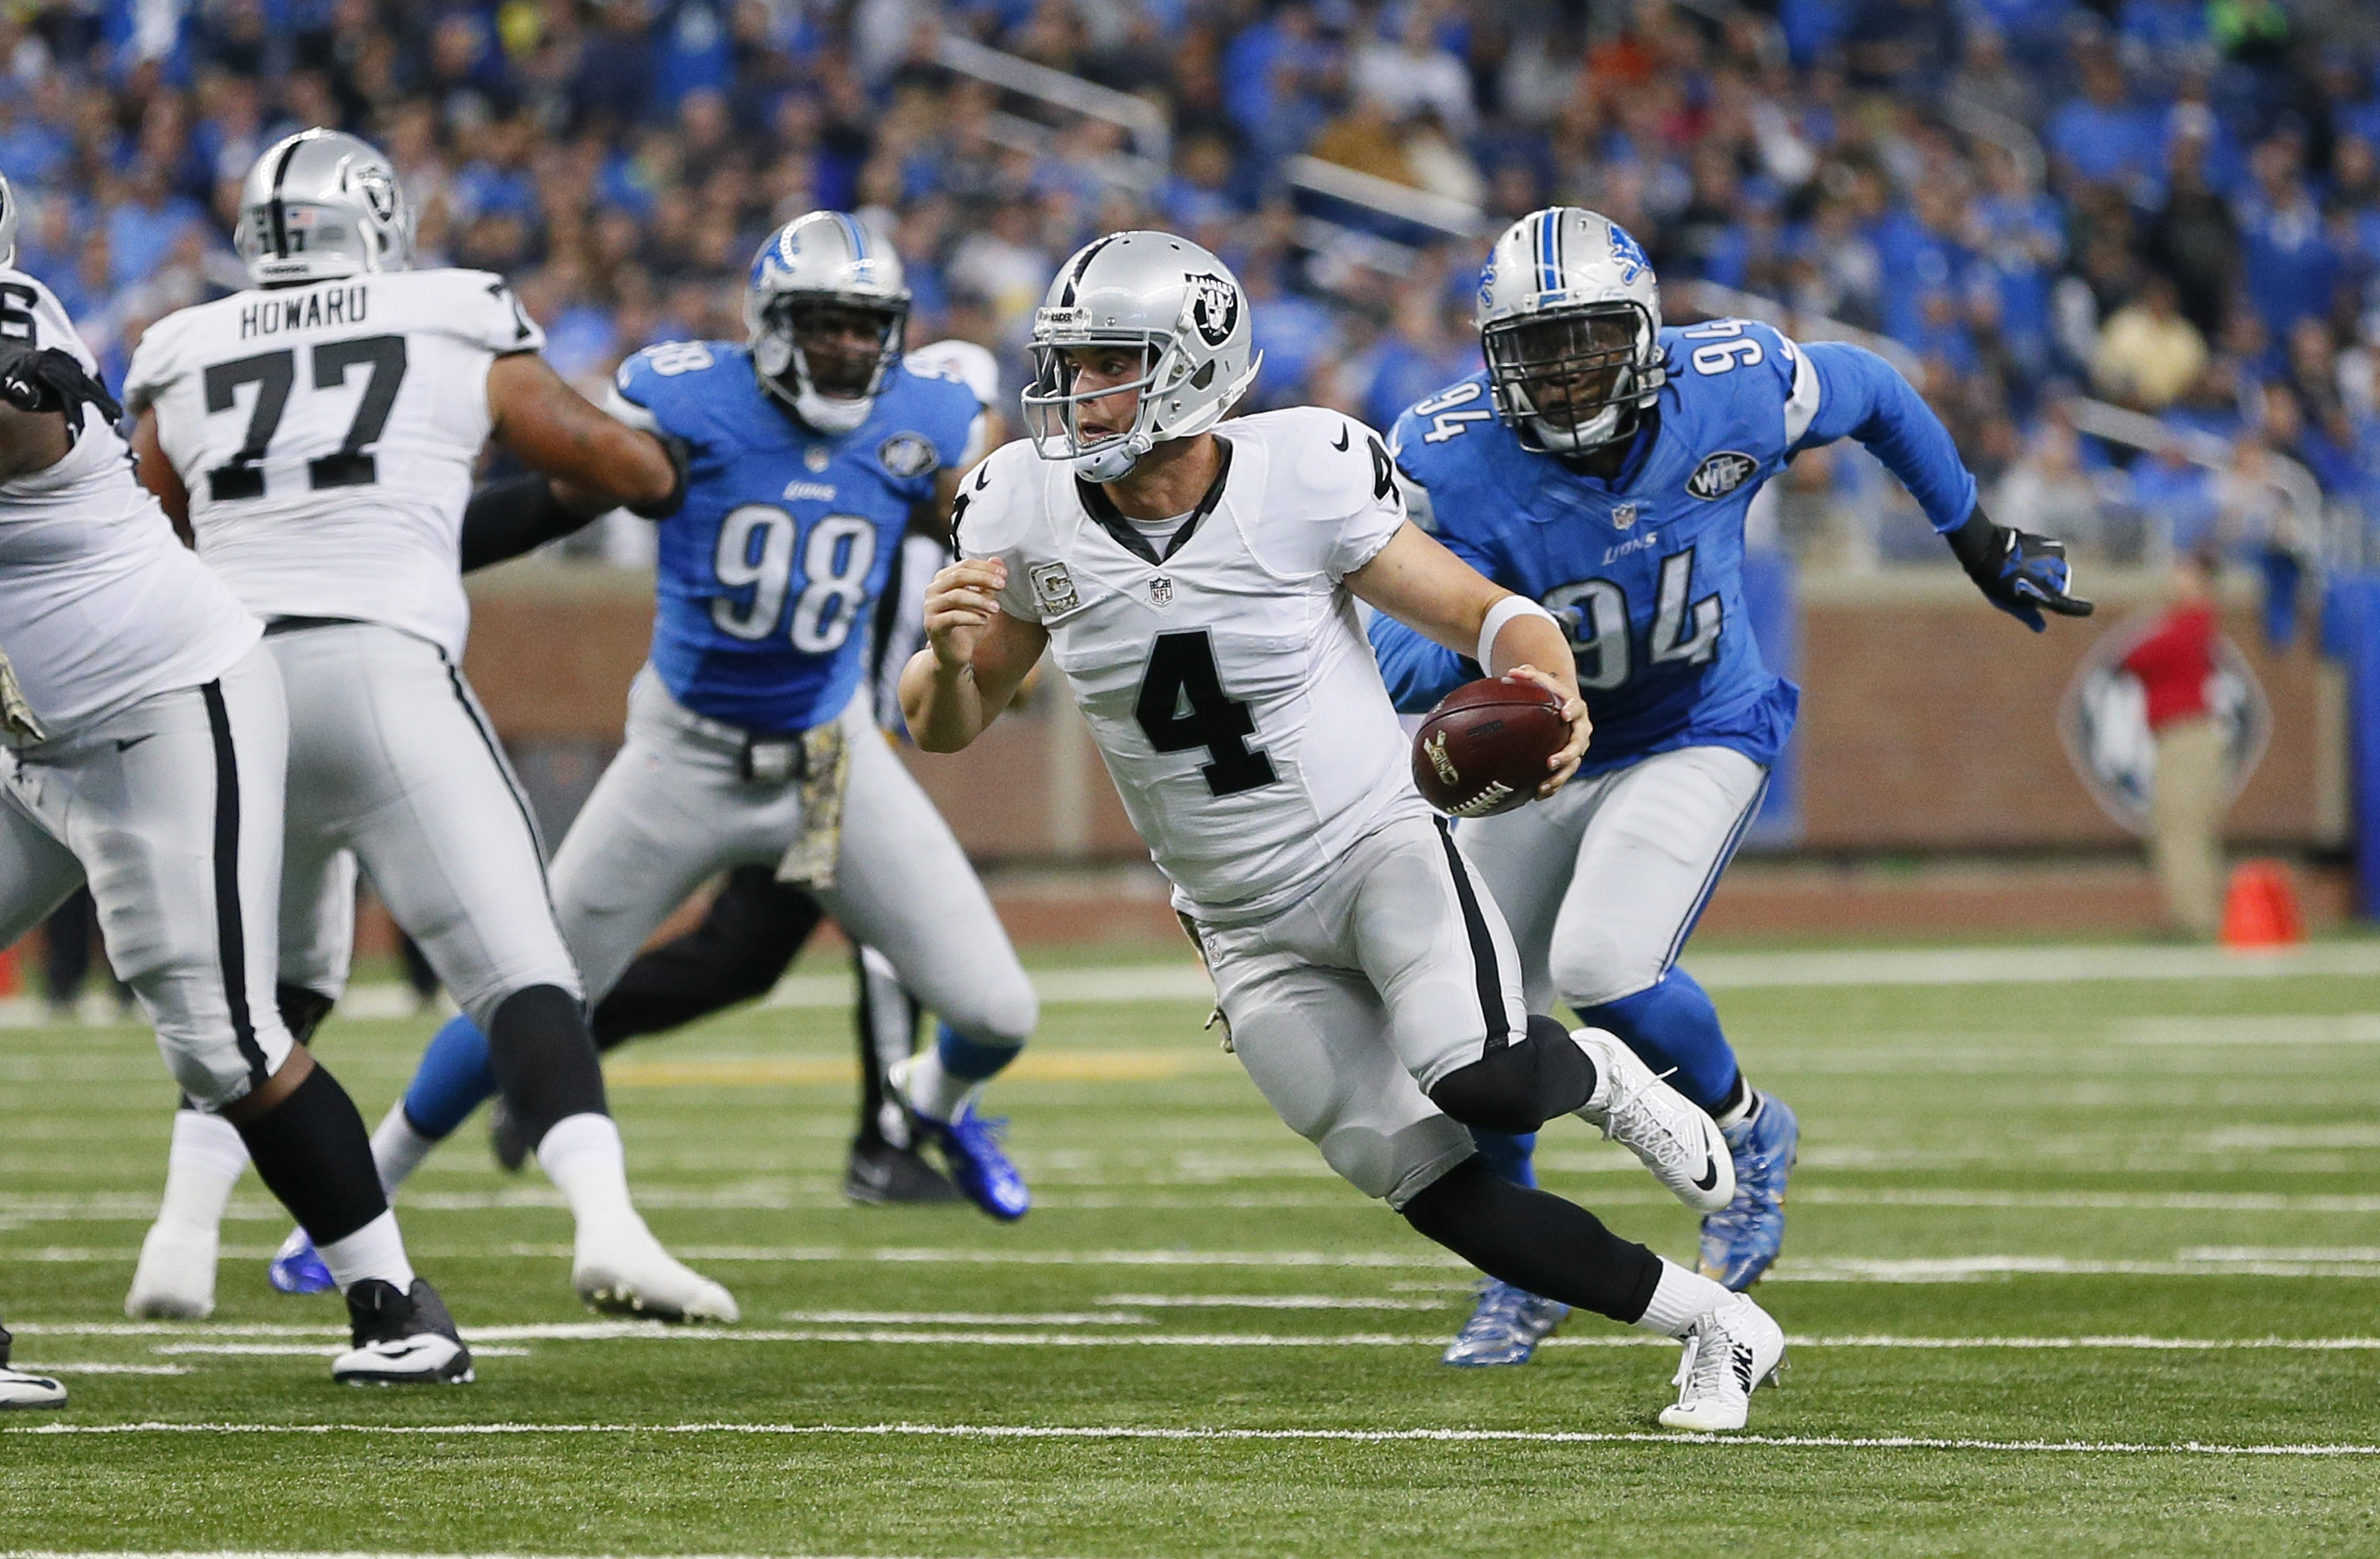 Oakland Raiders quarterback Derek Carr (4) scrambles for yardage while chased by Detroit Lions defensive end Ezekiel Ansah (94) during the second half of an NFL football game, Sunday, Nov. 22, 2015, in Detroit. (AP Photo/Rick Osentoski)